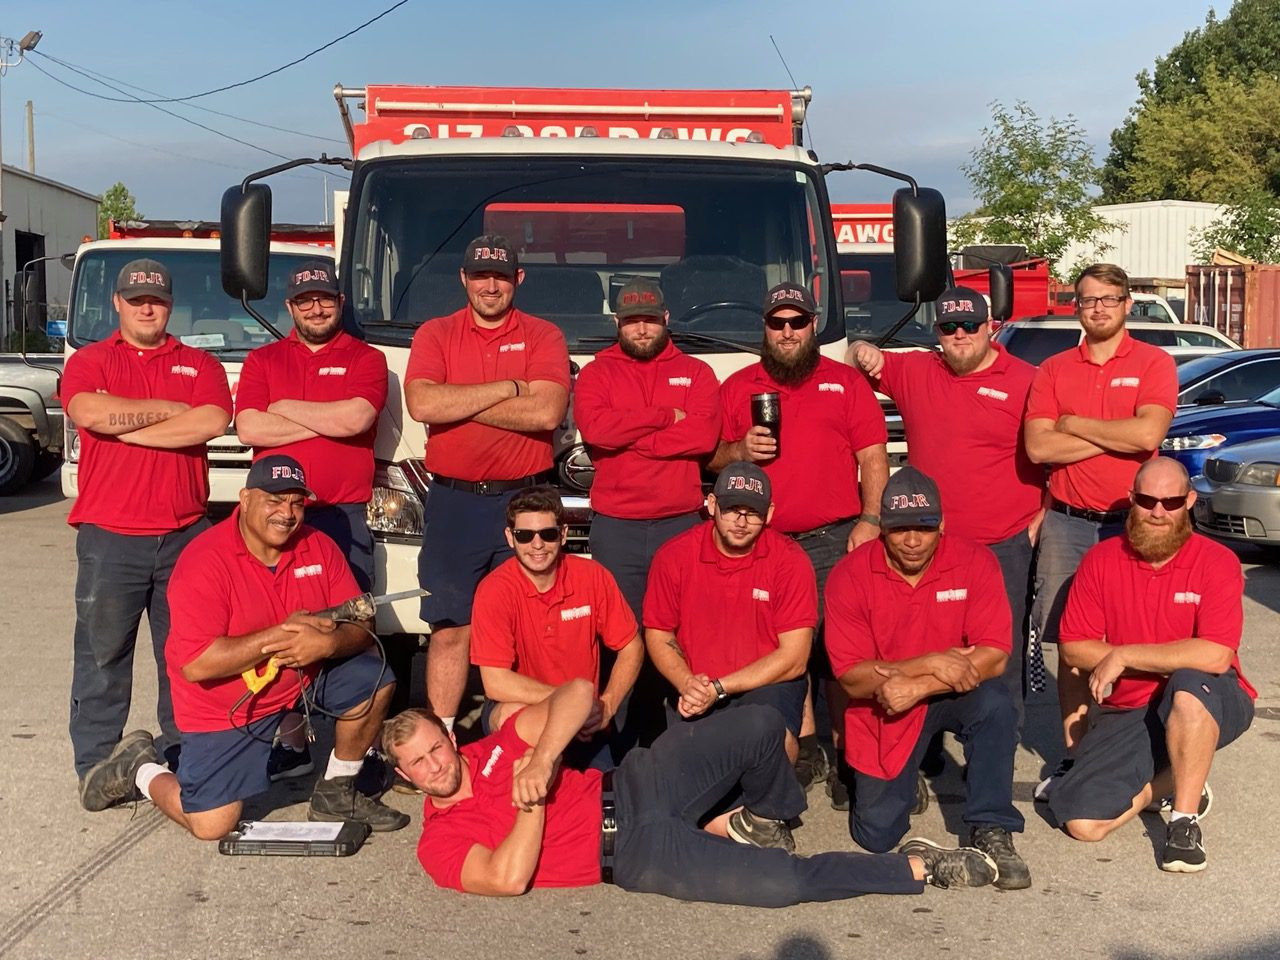 Image of Fire Dawgs Junk Removal team posing in front of their truck